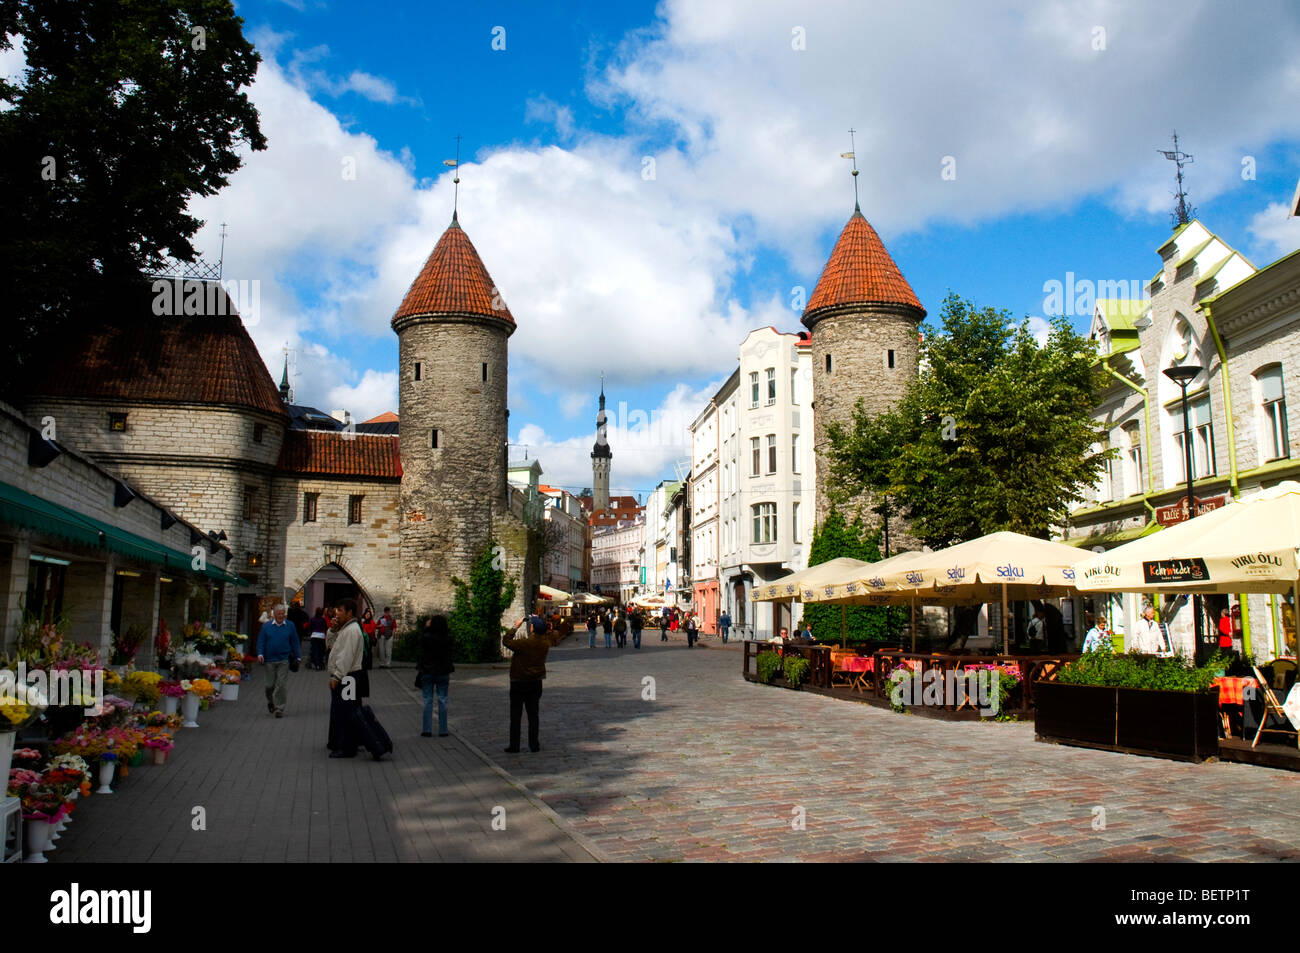 Viru Gate, Tallinn, Estonia - Stock Image